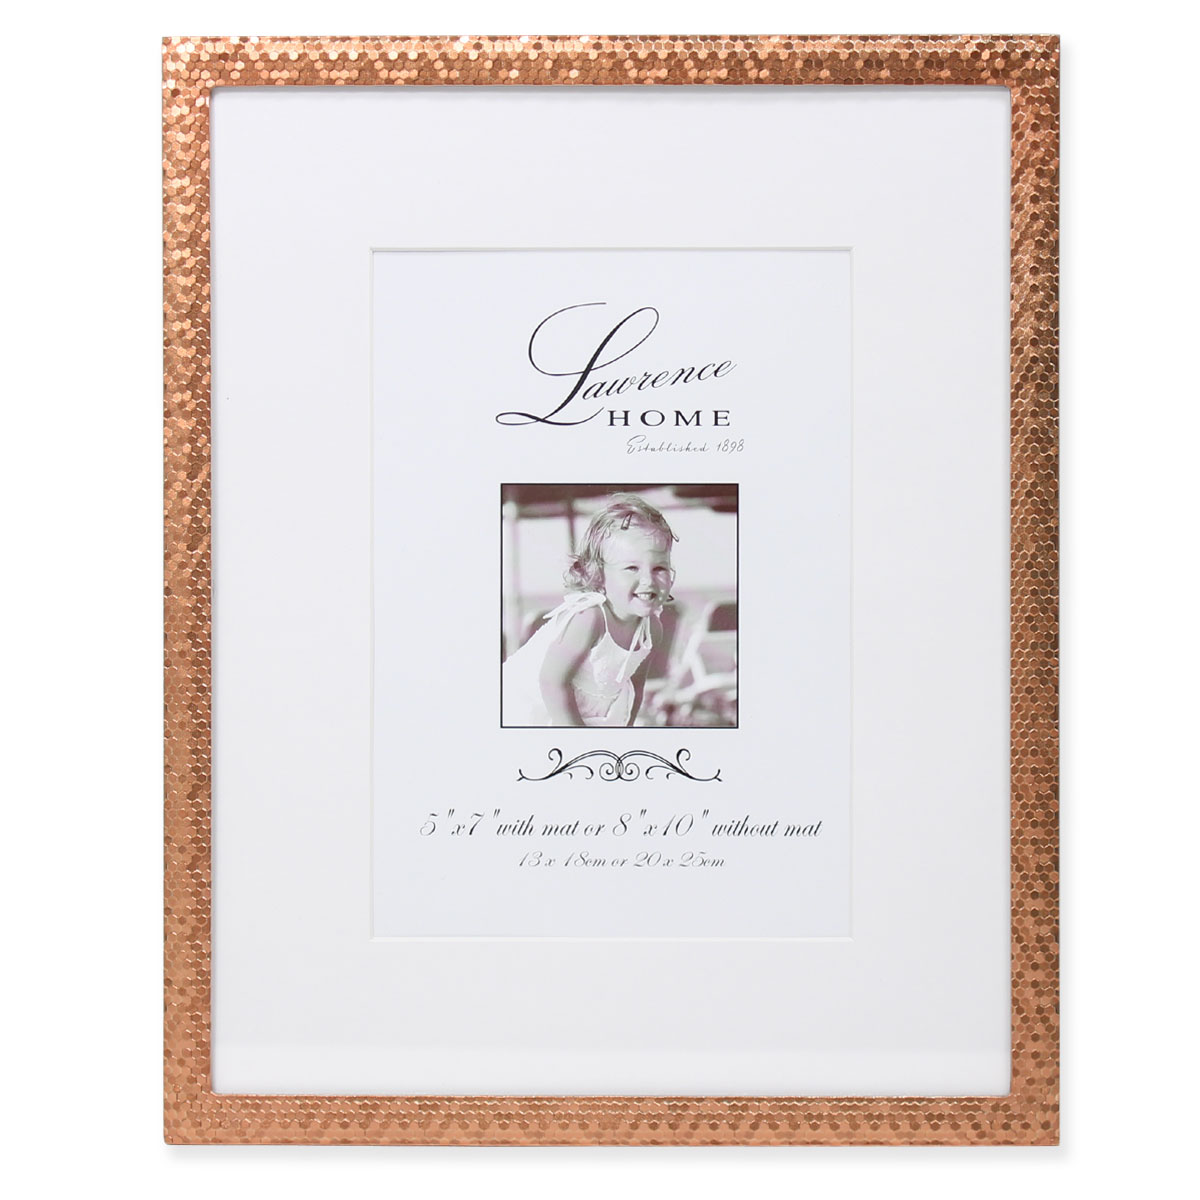 8x10 Rose Gold Shimmer Metal Matted For 5x7 Picture Frame